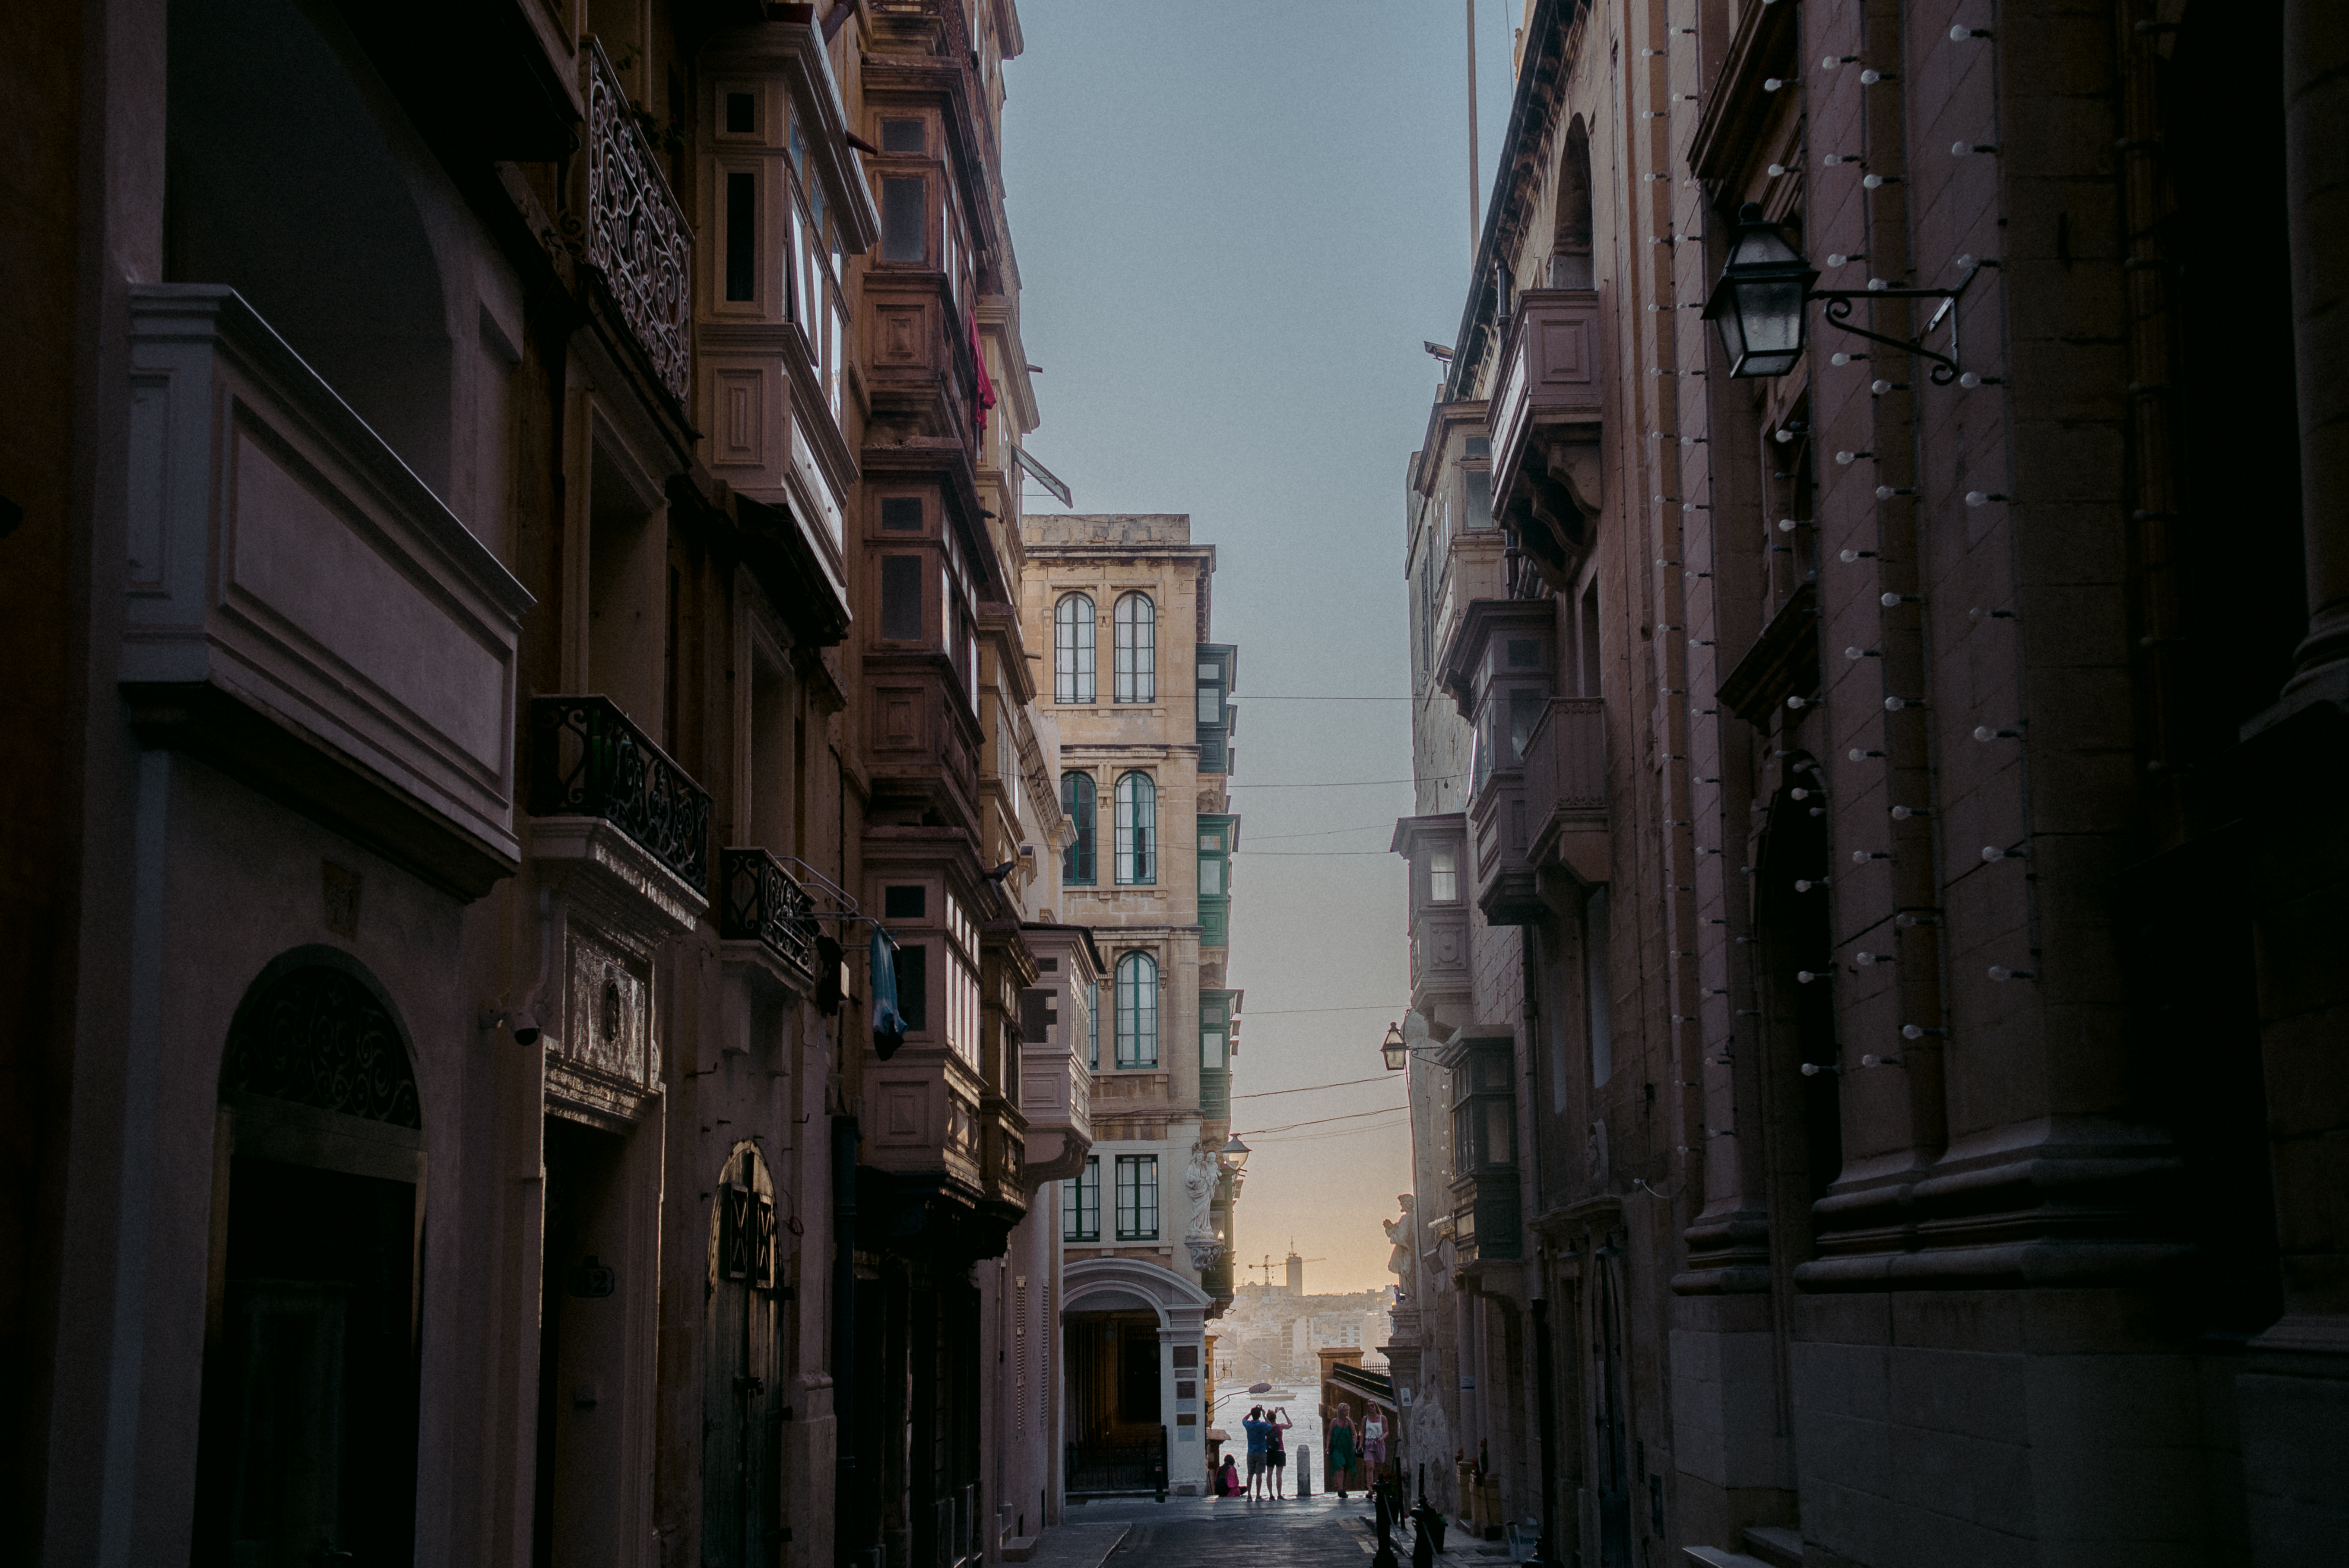 View of the ocean down a long street in valetta, malta